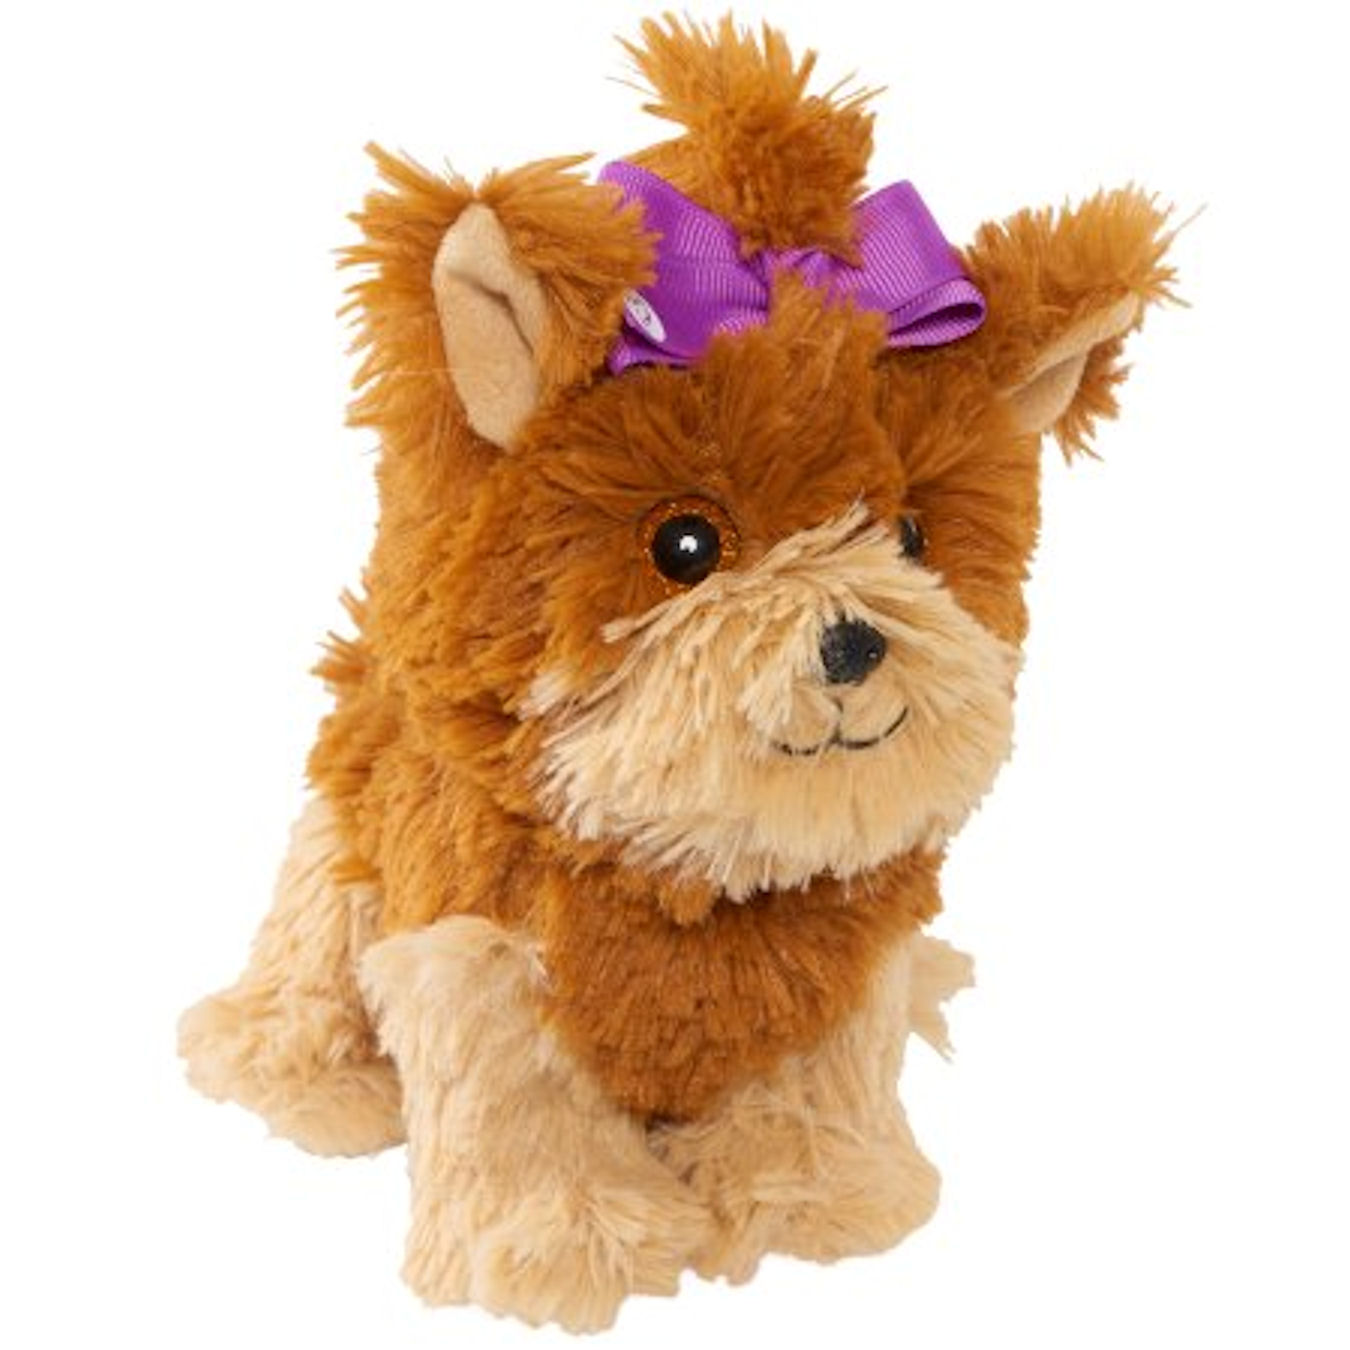 JoJo Siwa Bow Bow Plush Dog with Purple Bow